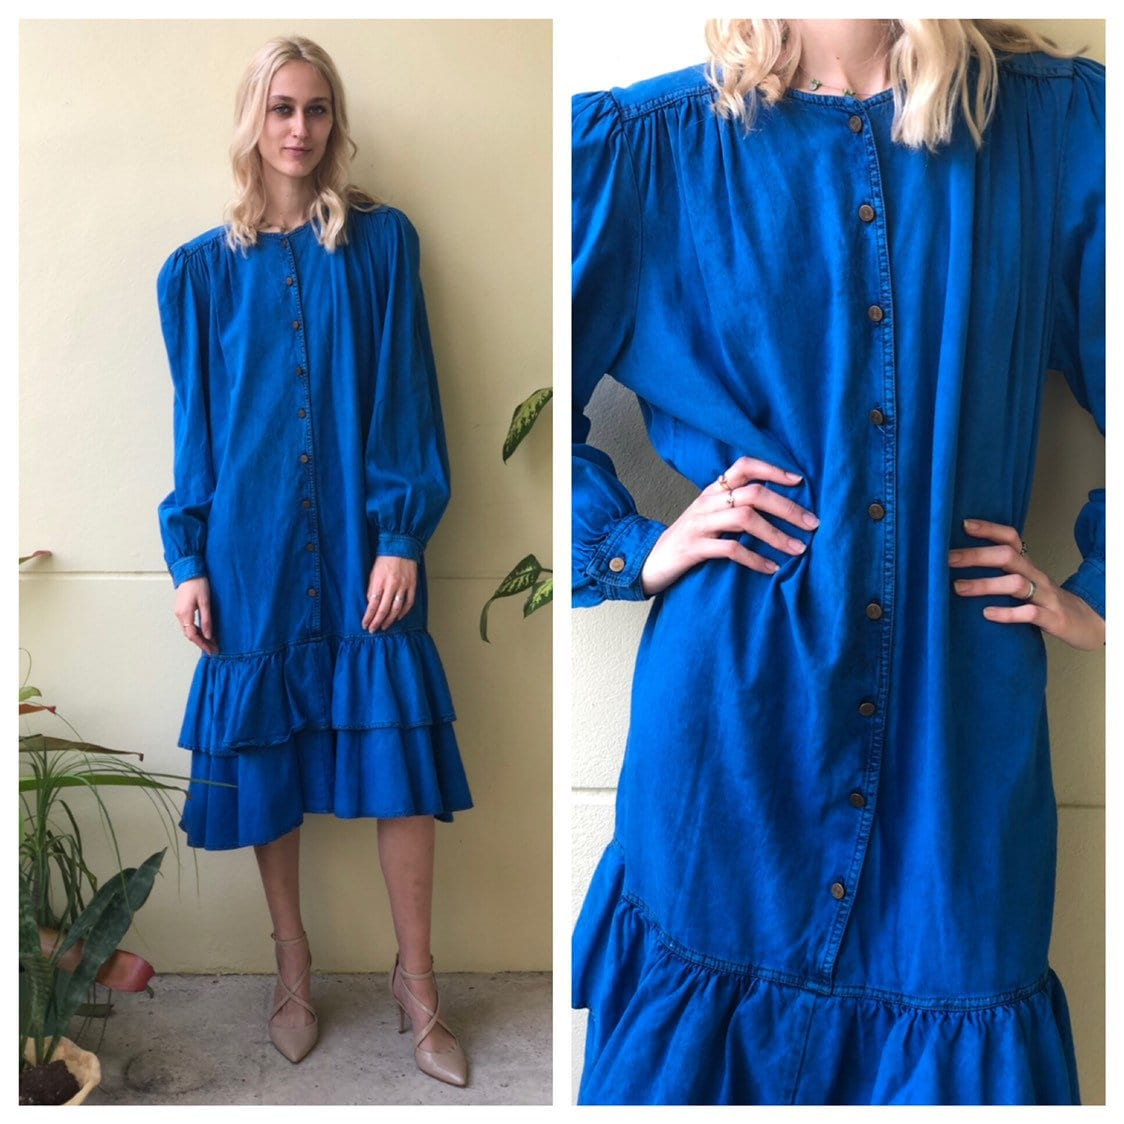 80s Dresses | Casual to Party Dresses 80S Denim DressTunic Oversized Jean Bright Blue With Frills Frilly Hem Chez Fashions $125.00 AT vintagedancer.com